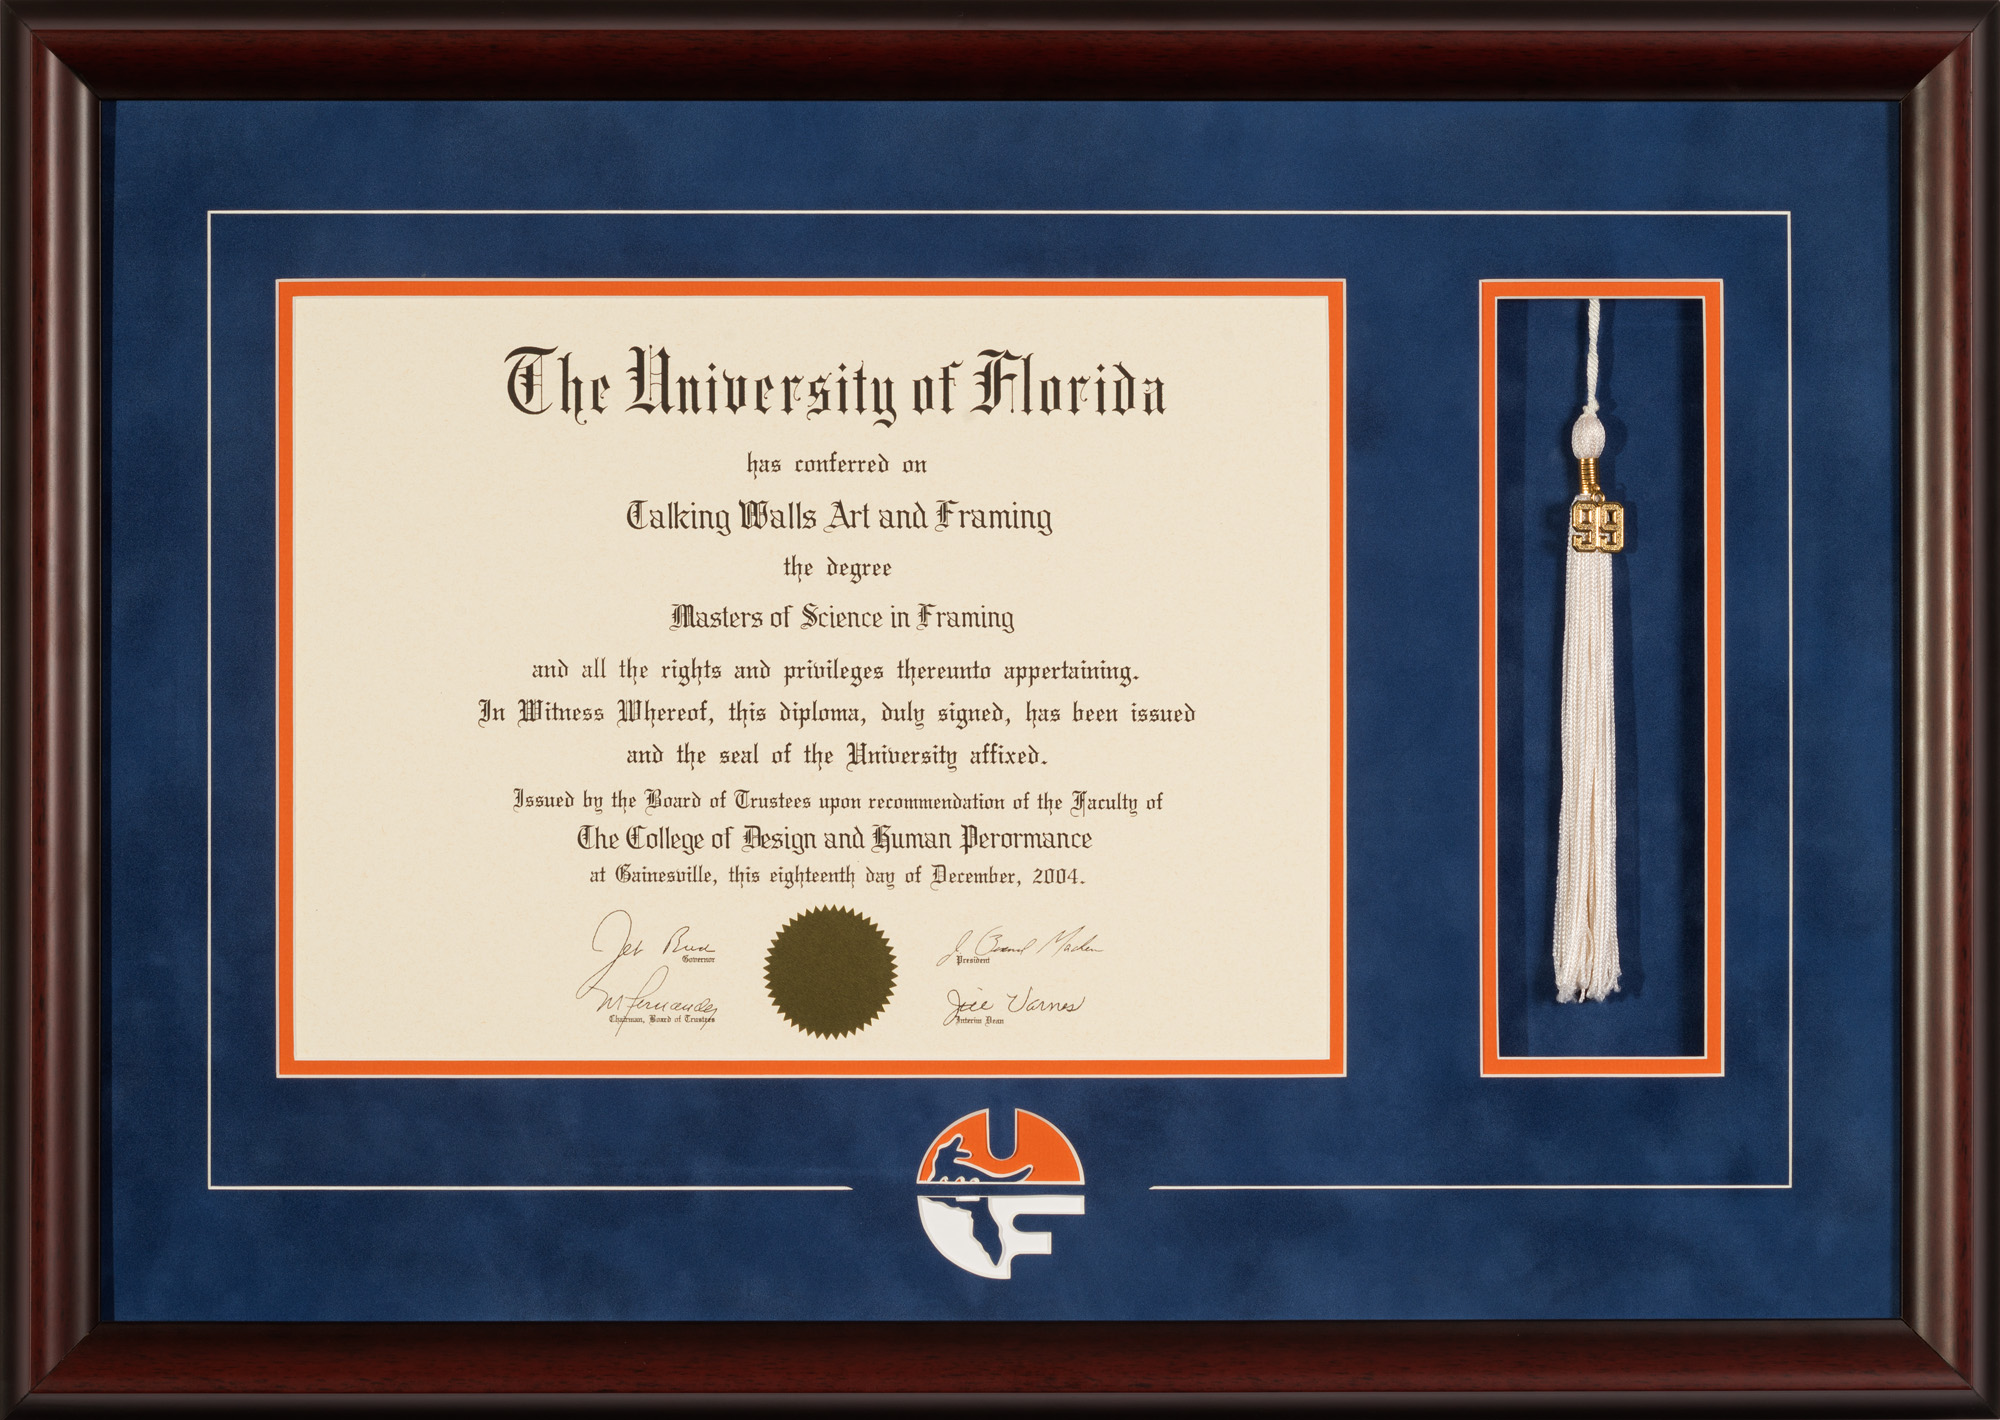 UNIVERSITY OF FLORIDA DIPLOMA FRAME WITH LOGO AND TASSEL - Talking Walls